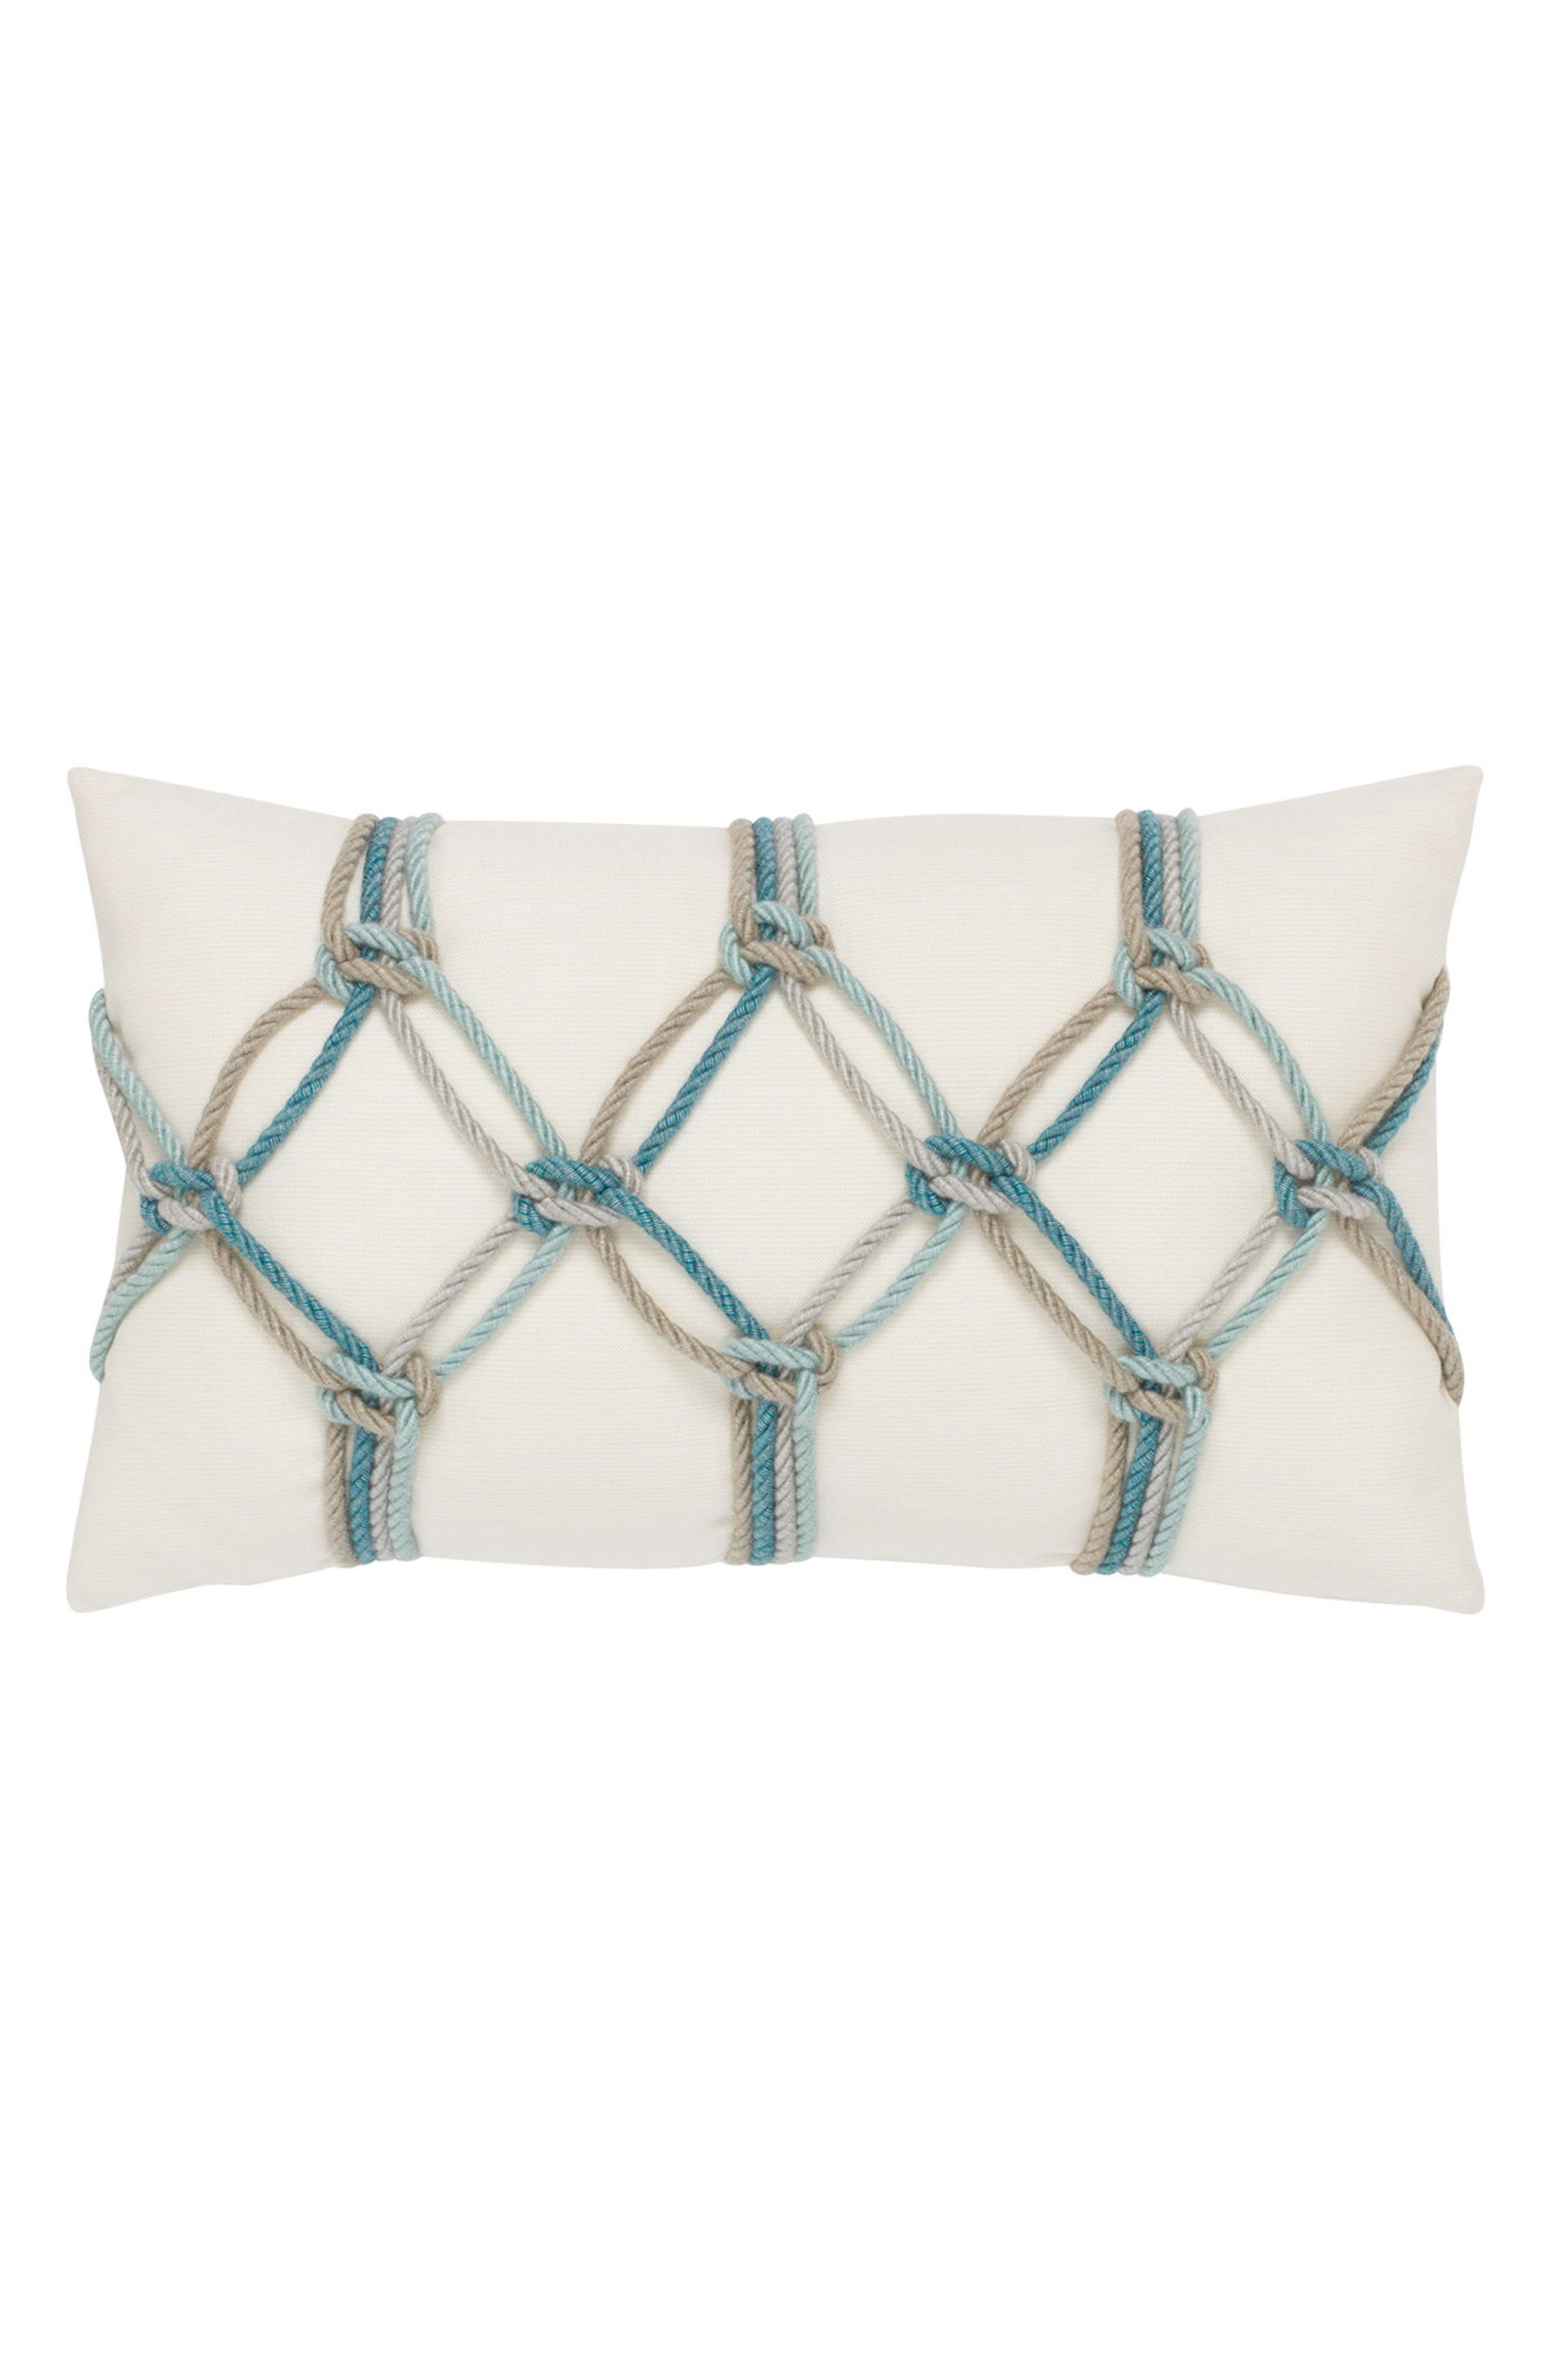 Aqua Rope Indoor/Outdoor Accent Pillow,                             Main thumbnail 1, color,                             Off White Blue